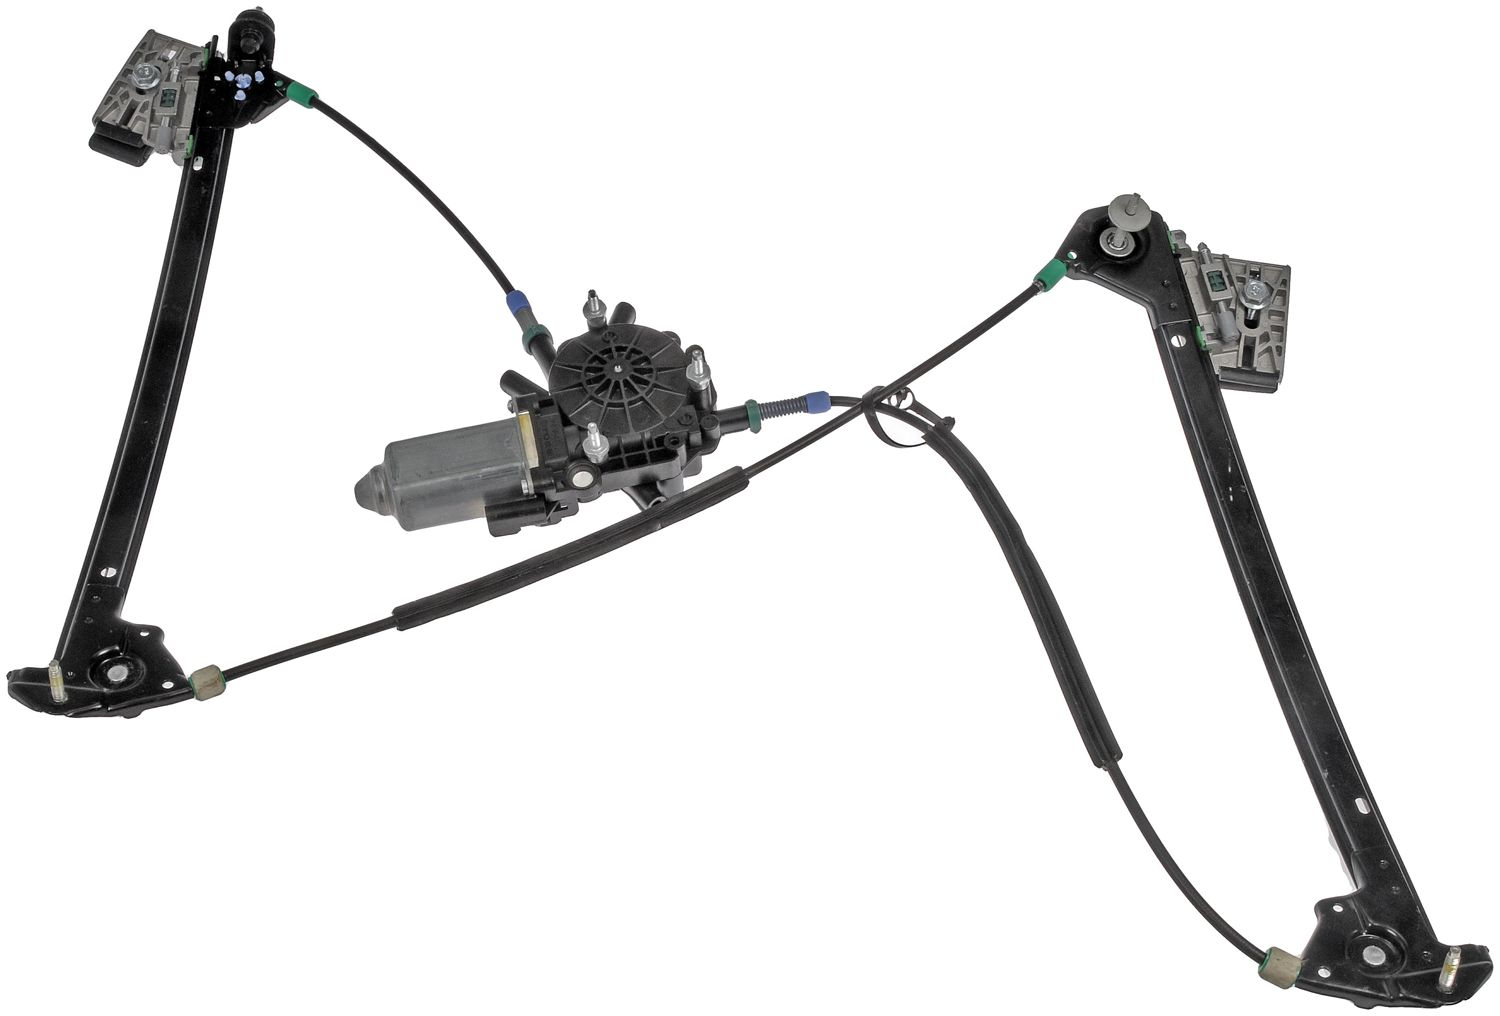 Power Window Regulator And Motor Assembly 748-472 Fits